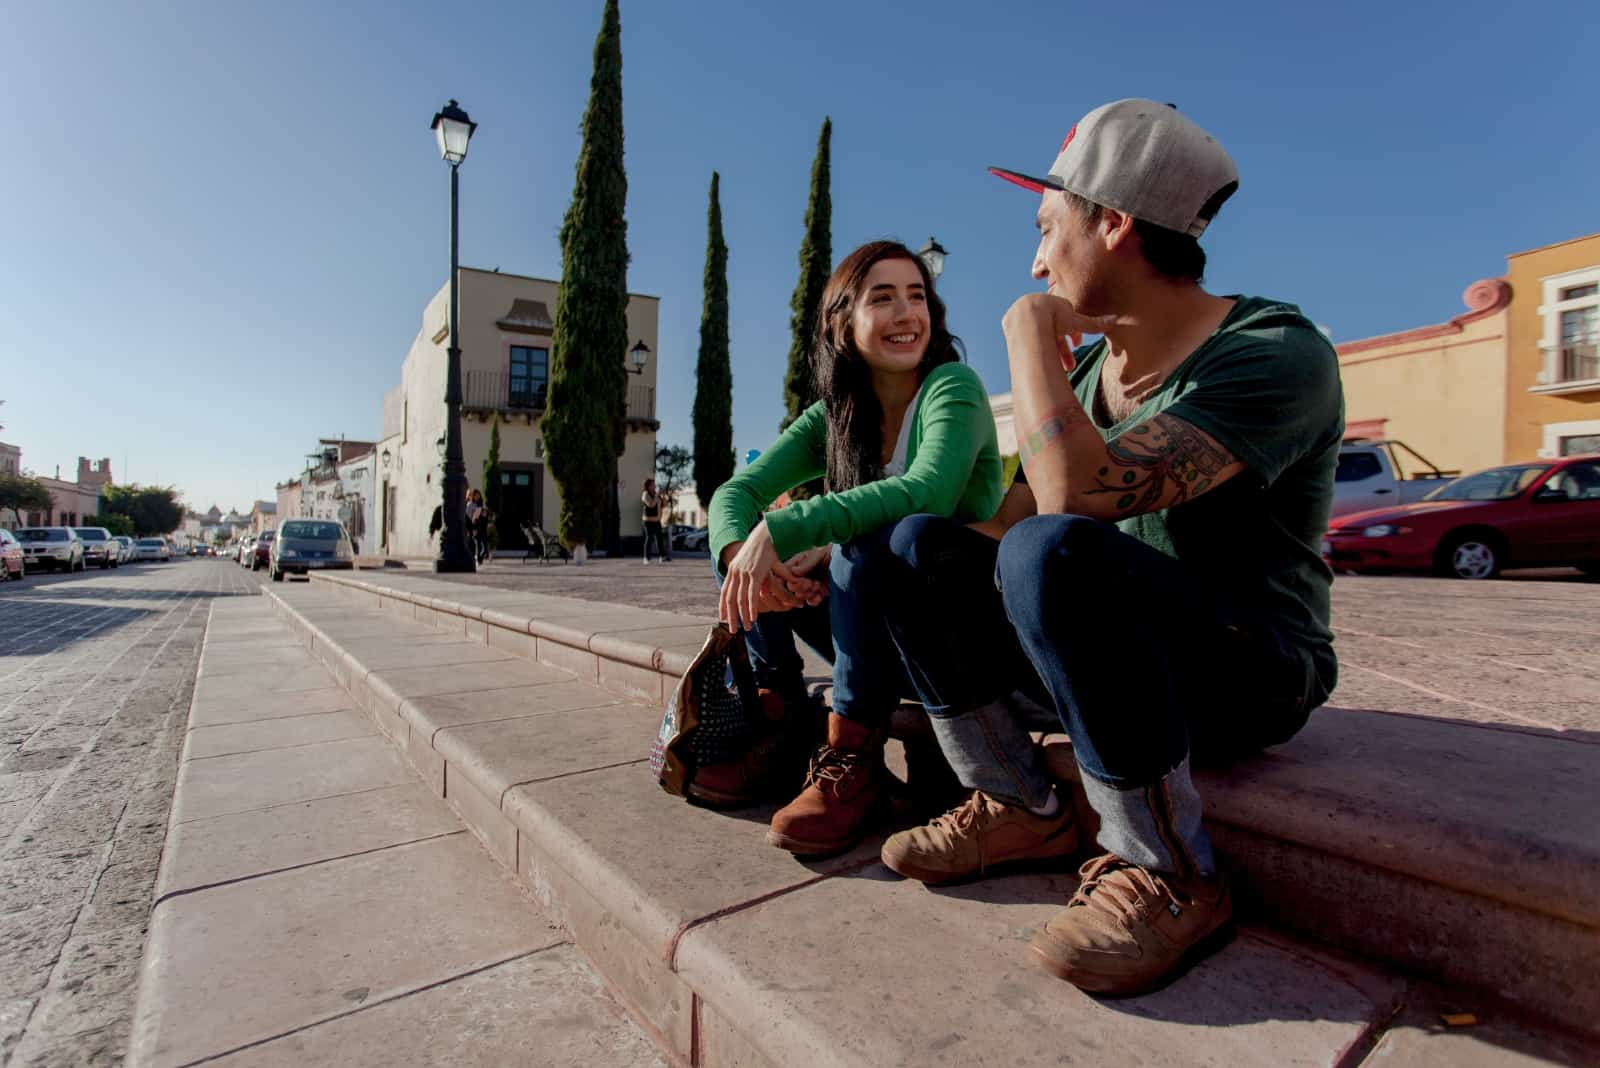 man and woman making eye contact while sitting on stairs